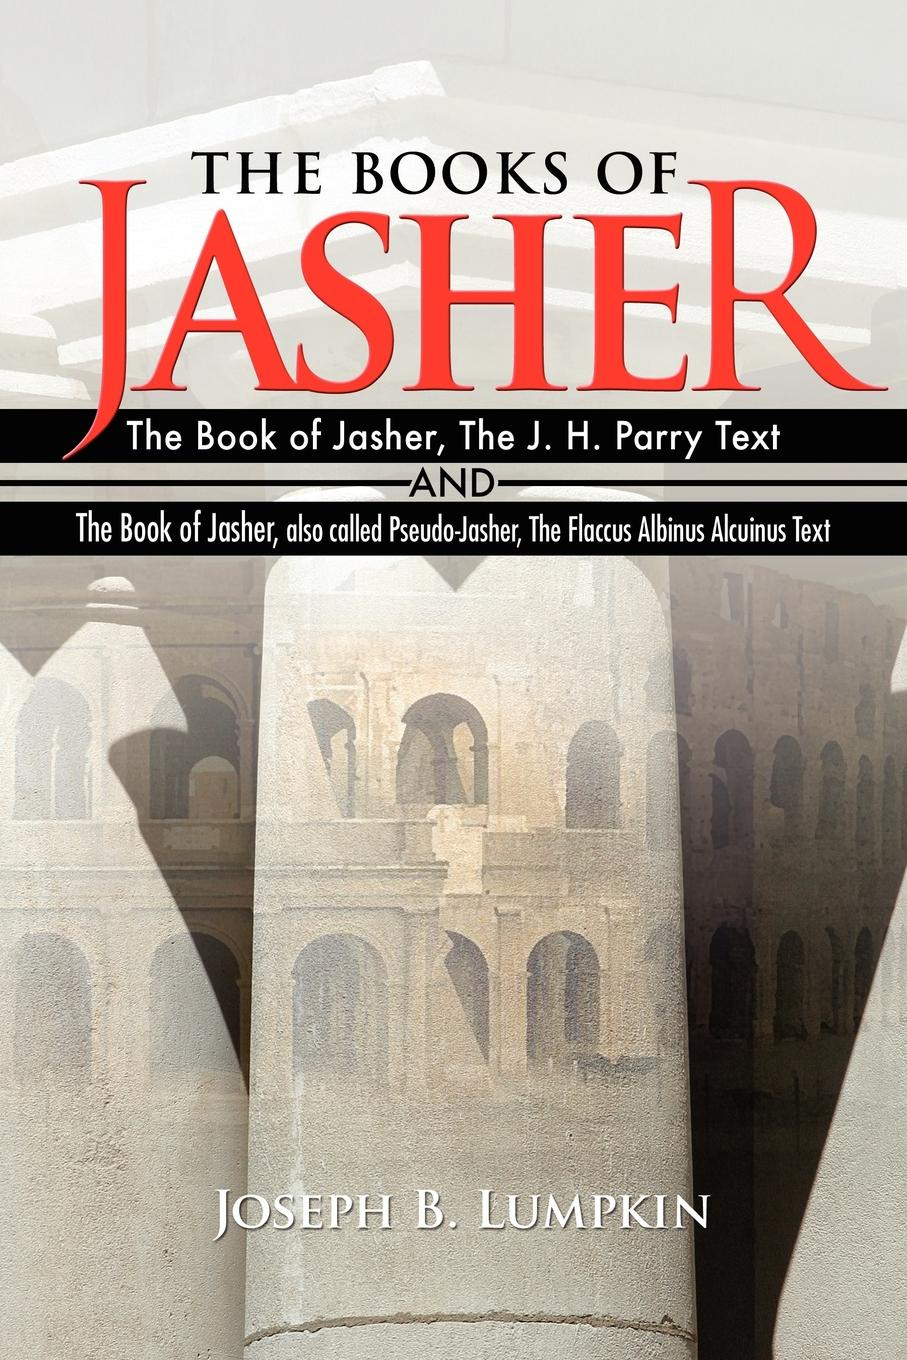 Joseph B. Lumpkin The Books of Jasher. The Book of Jasher, The J. H. Parry Text And The Book of Jasher, also called Pseudo-Jasher, The Flaccus Albinus Alcuinus Text malcolm kemp extreme events robust portfolio construction in the presence of fat tails isbn 9780470976791